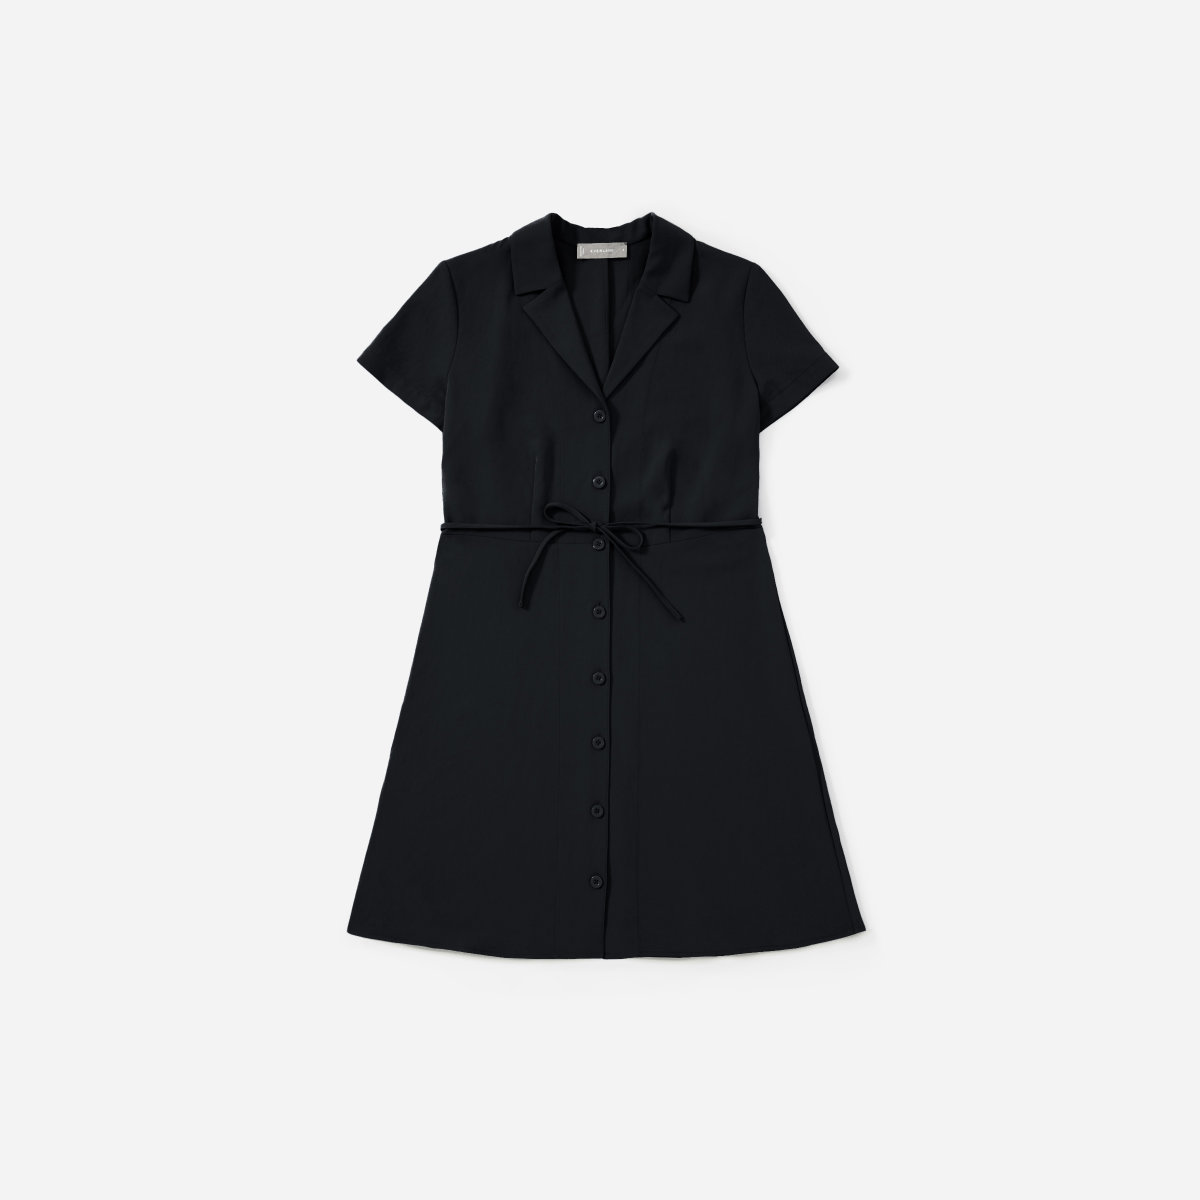 Everlane Japanese GoWeave Notch Shirtdress